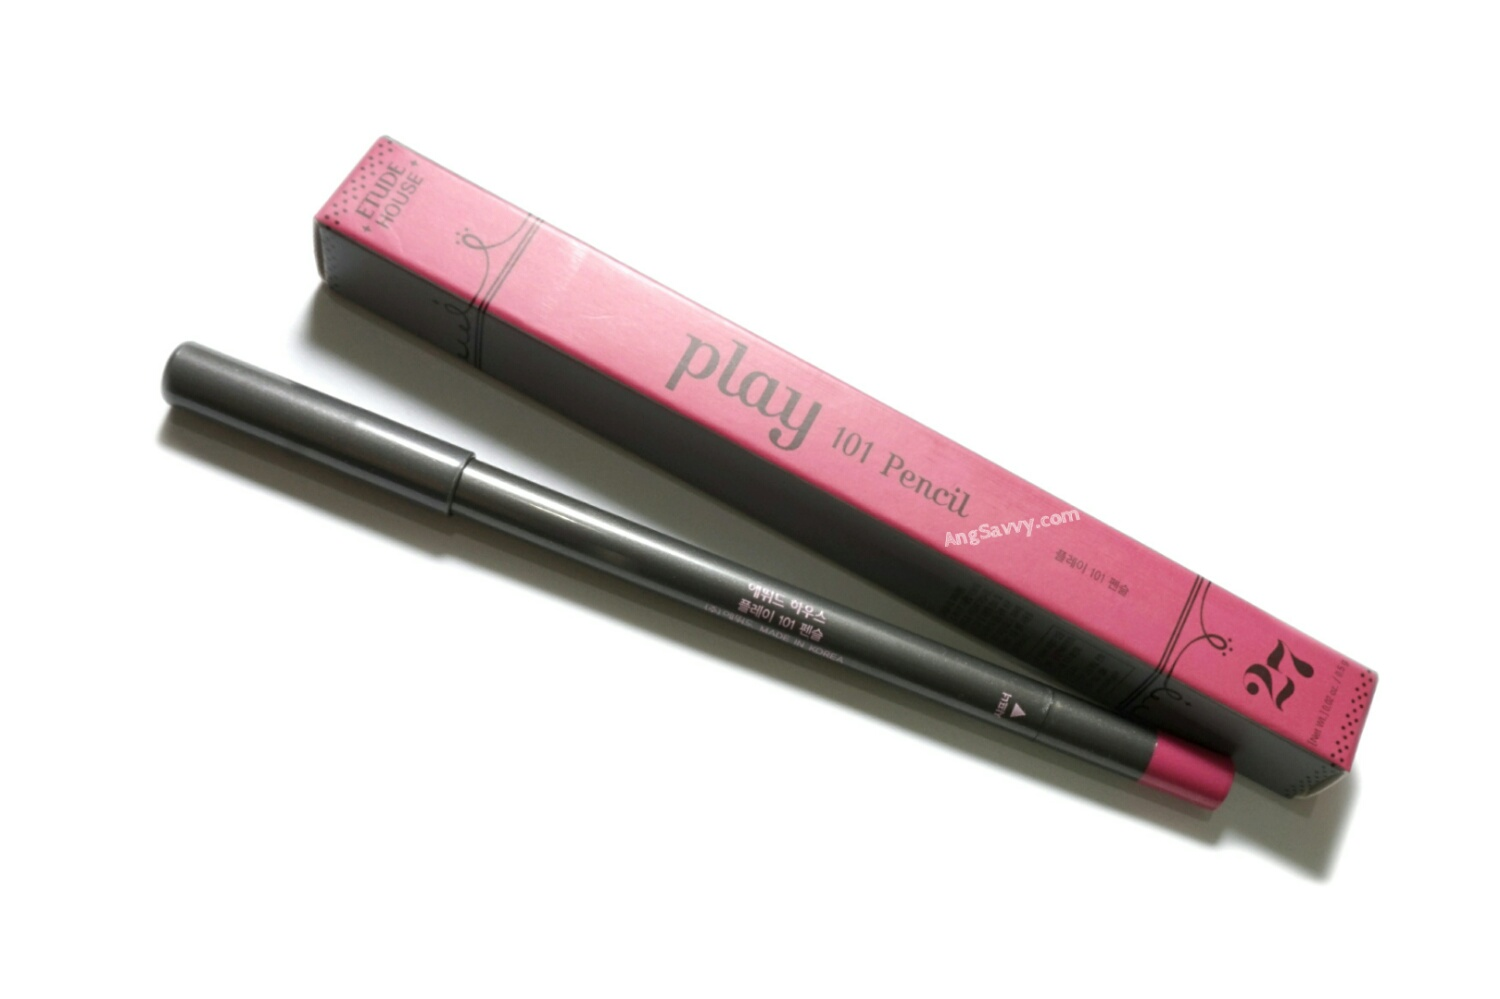 Etude House Play 101 Pencils 27 and 41